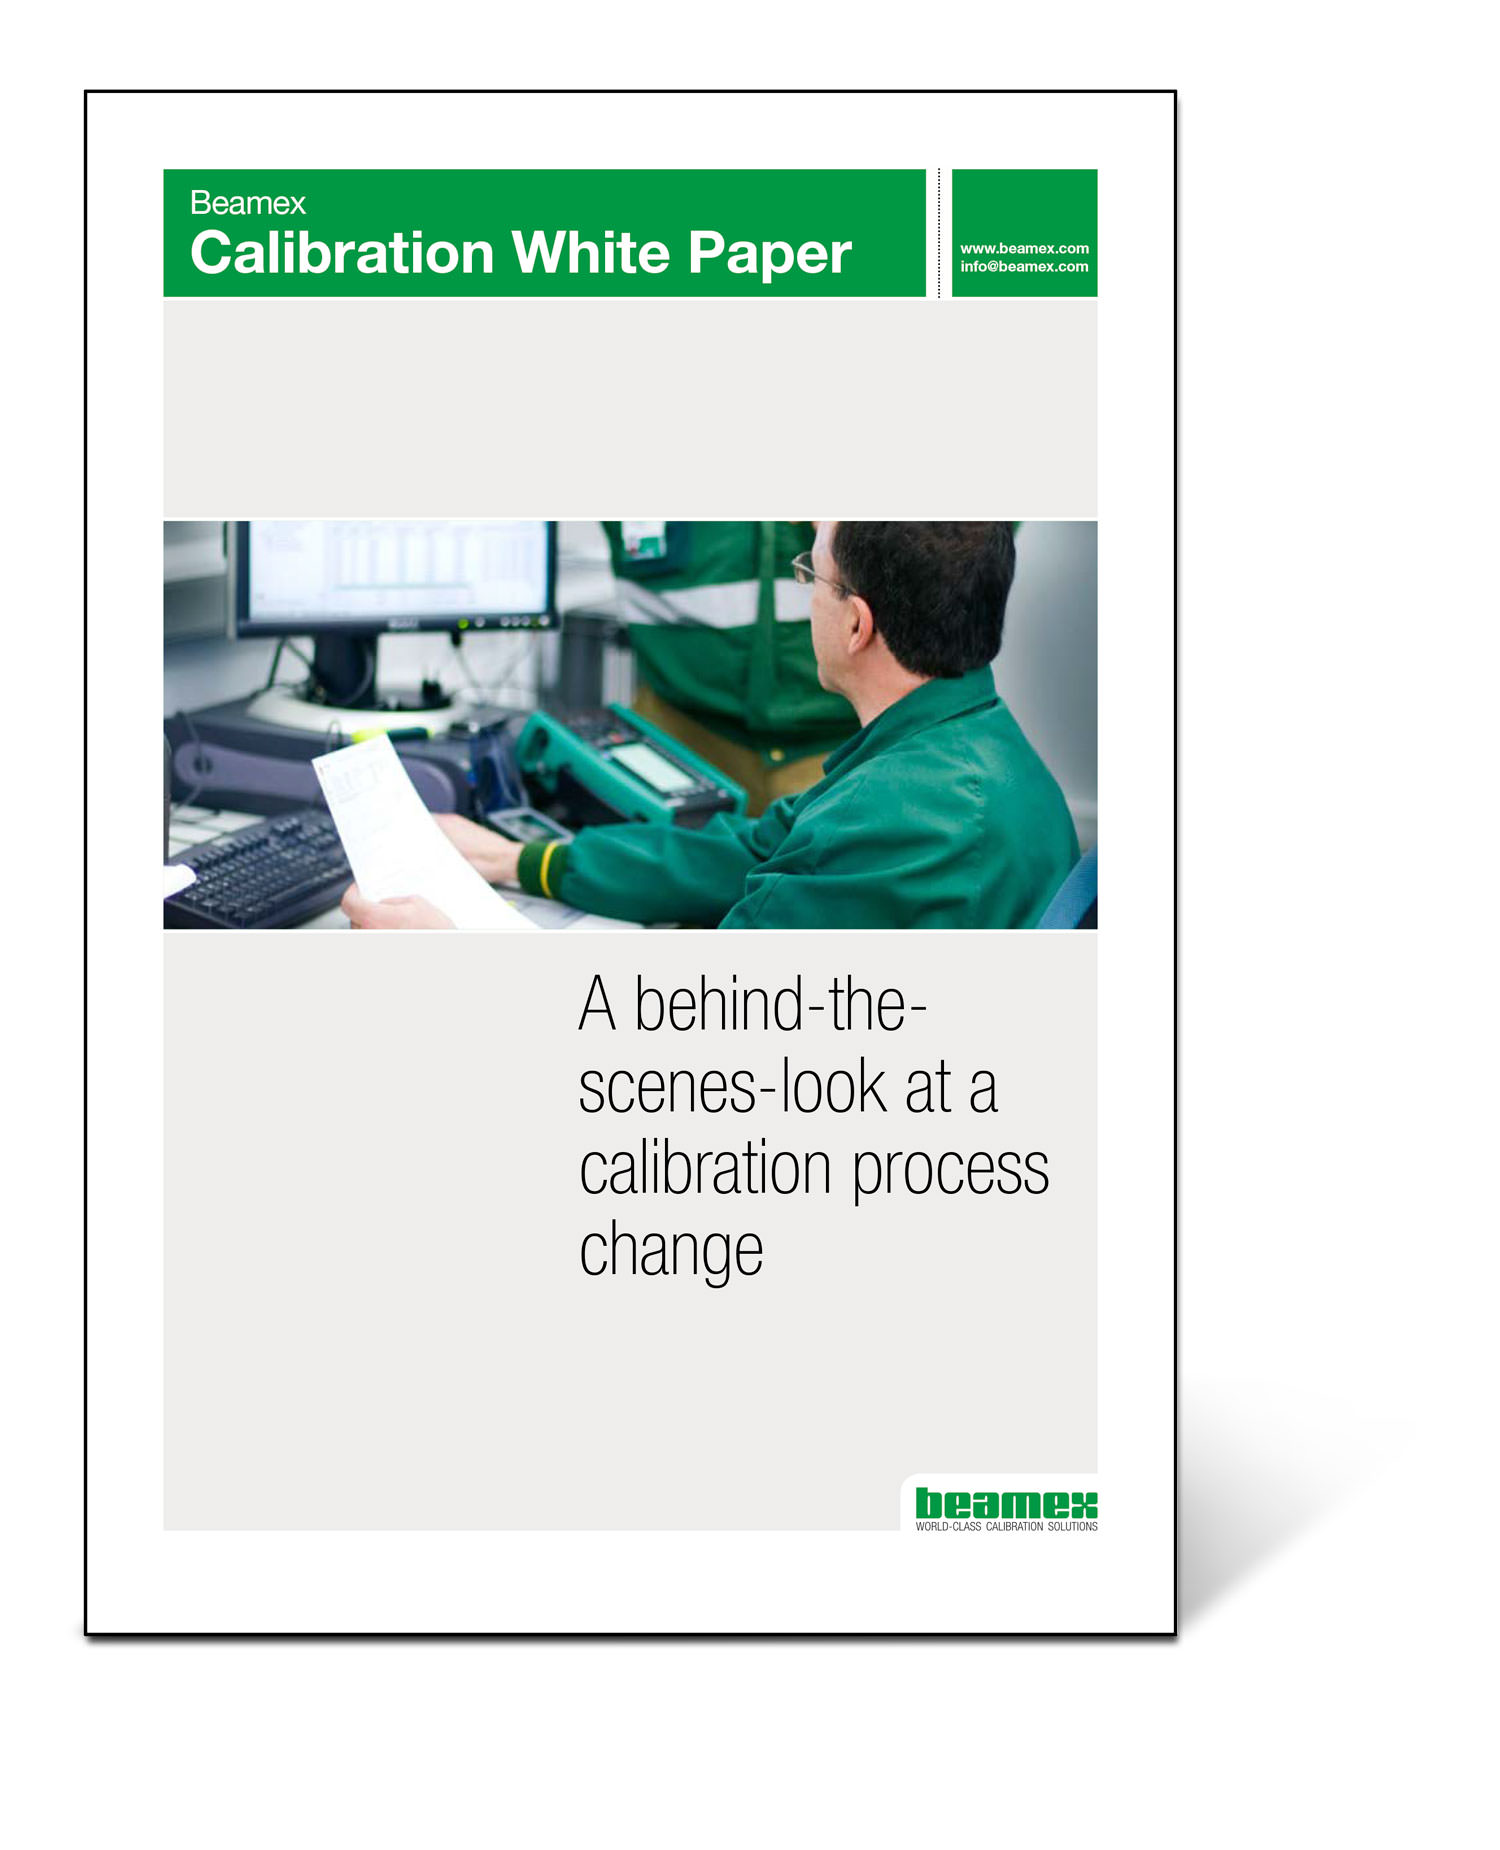 A behind the scenes look at a calibration process change, Beamex white paper